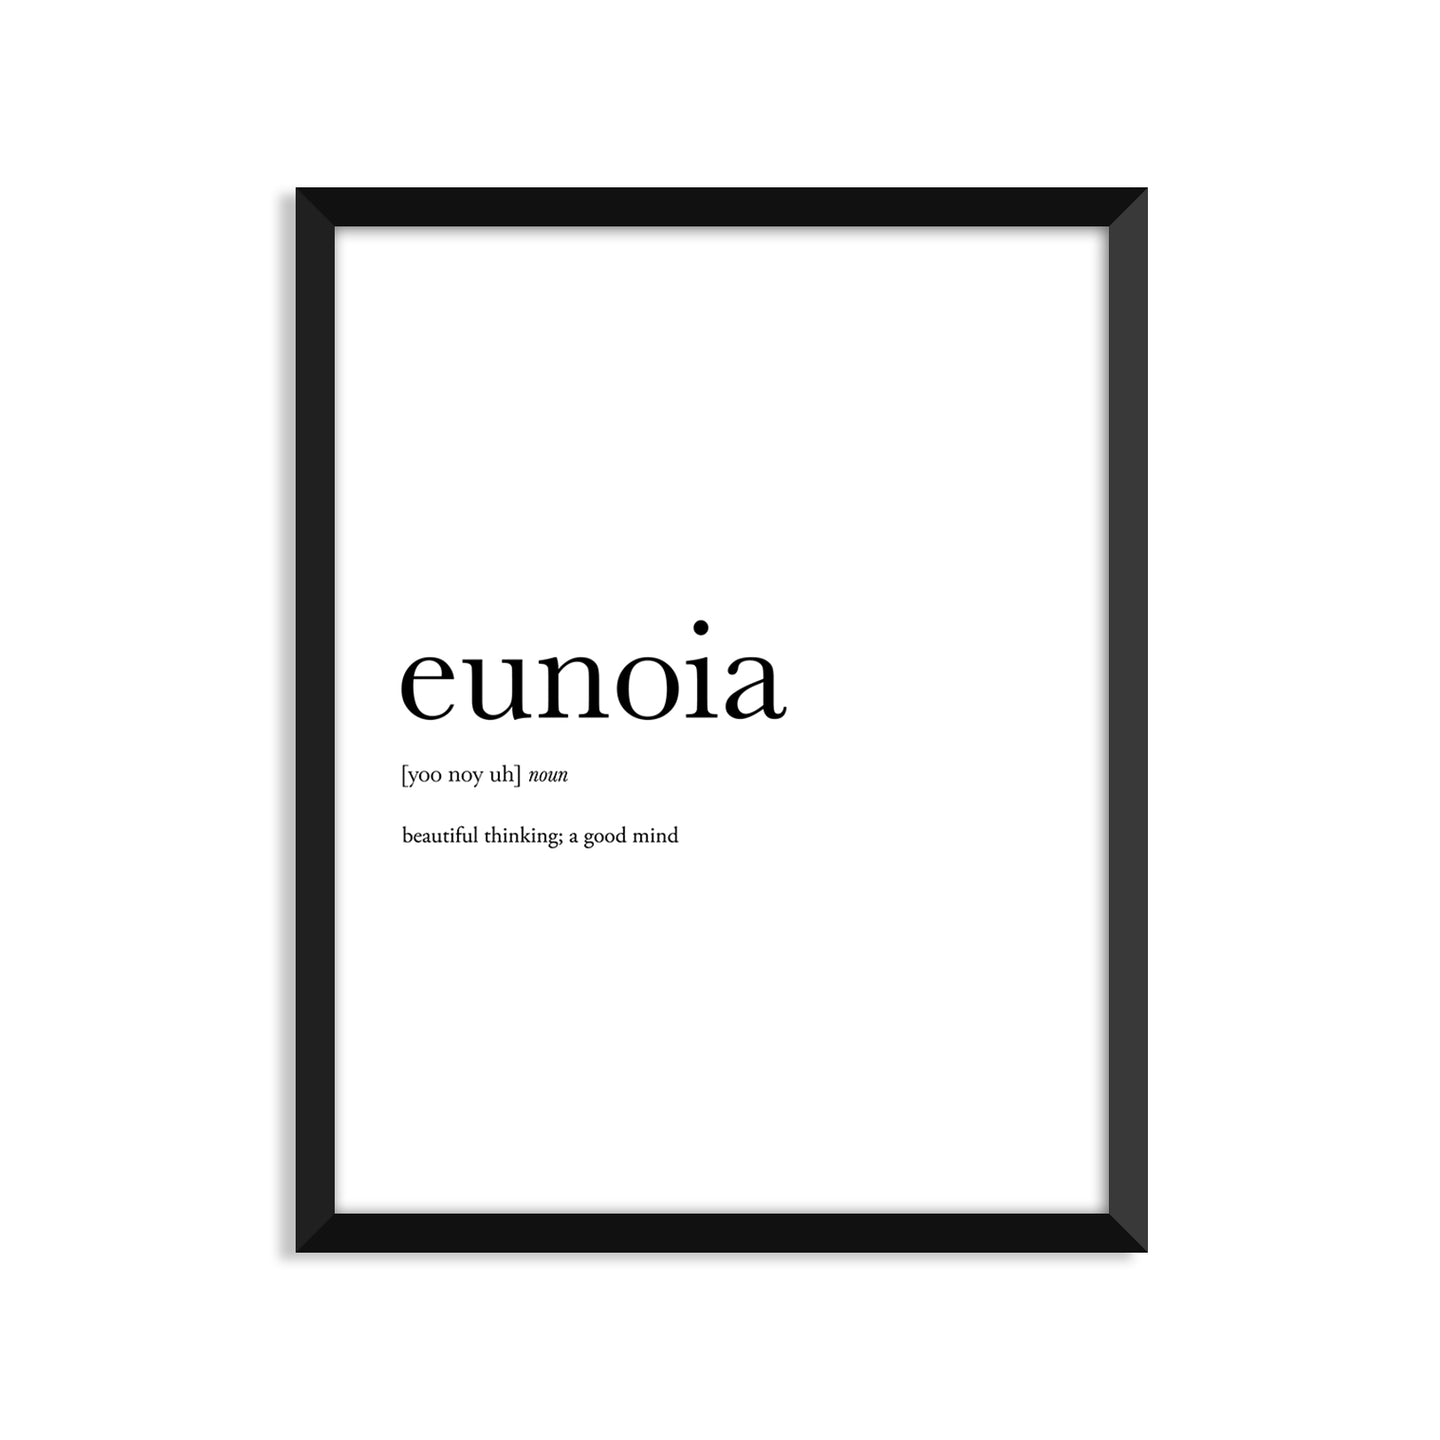 Eunoia Definition - Unframed Art Print Or Greeting Card